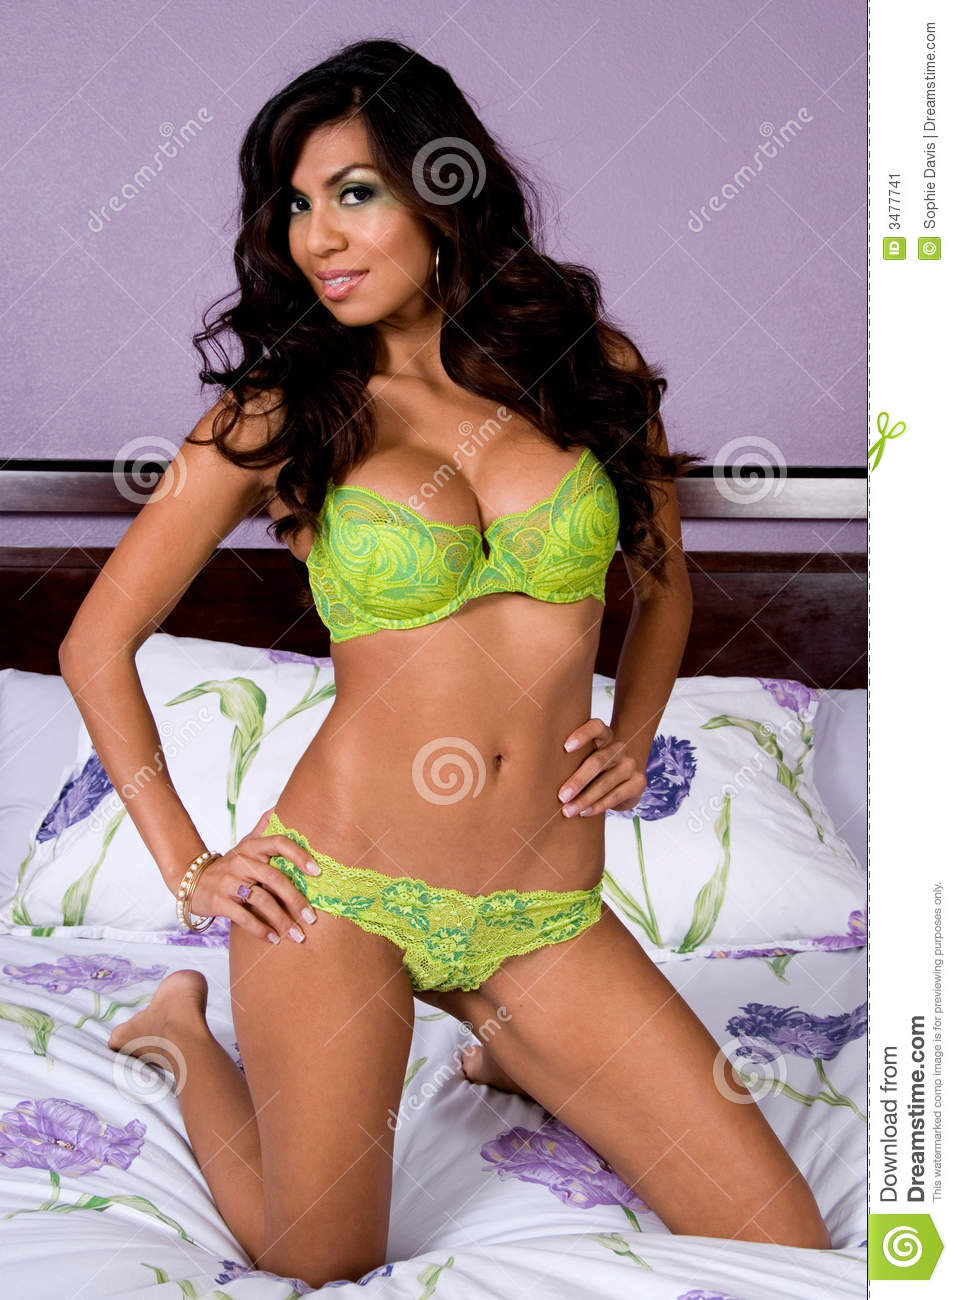 latina in green lingerie stock image. image of hispanic - 3477741